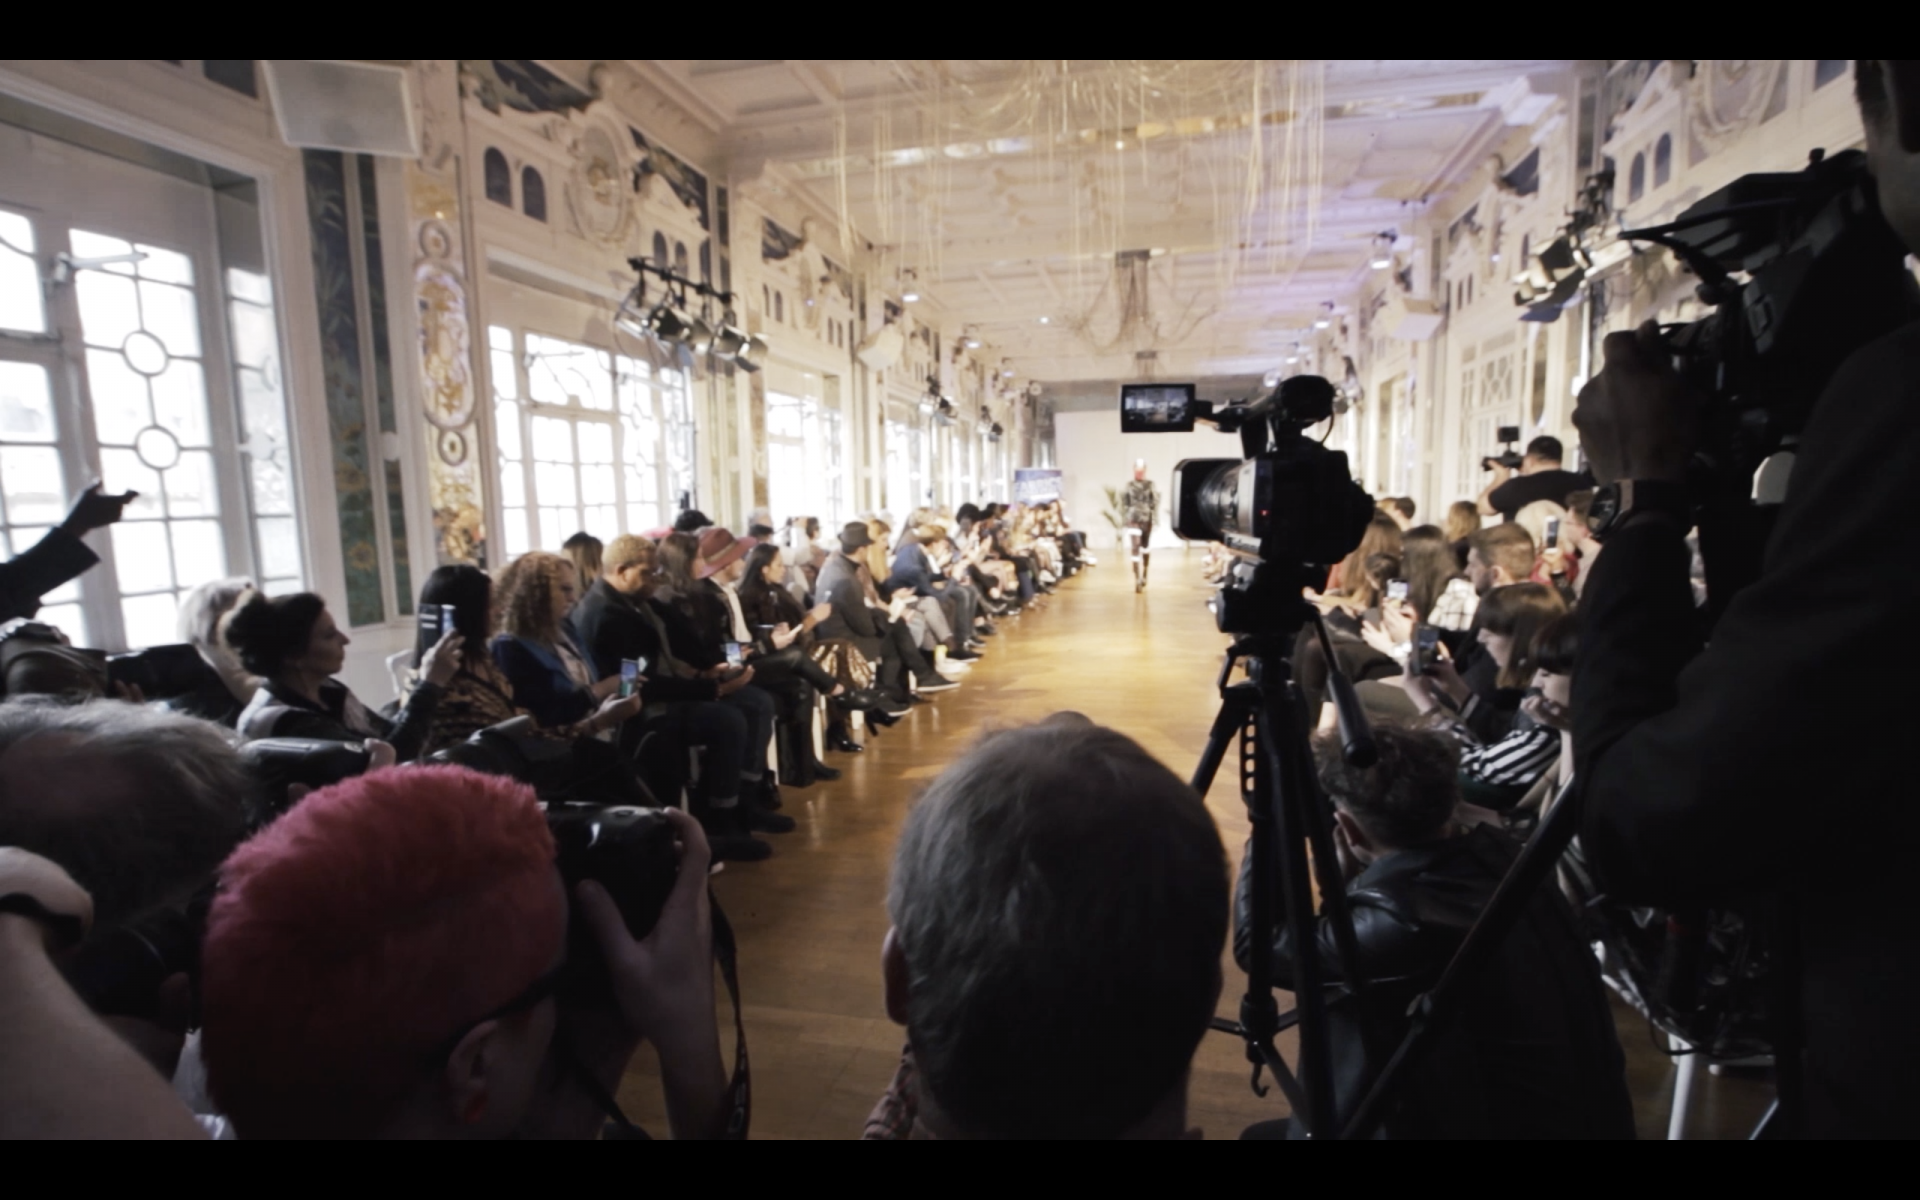 ParIsFashion – 5th March 2019 – Le Salon Des Miroirs, Paris